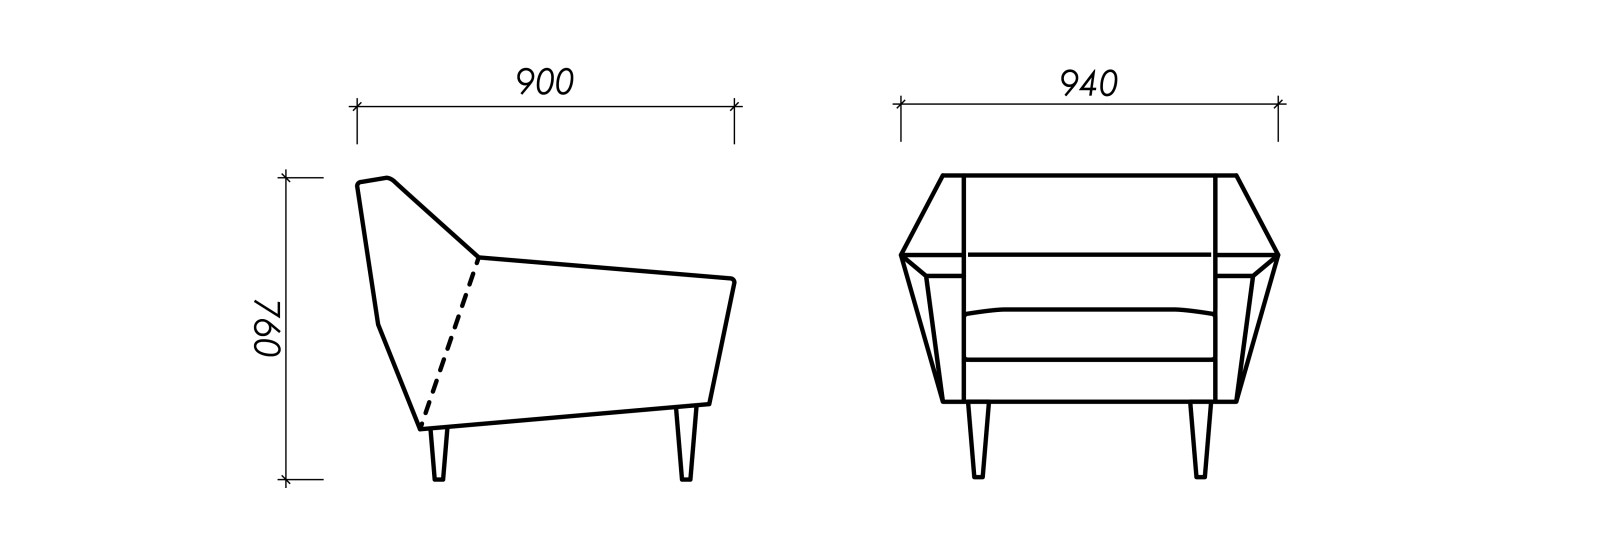 Dimensions of Oot-Oot Studio furniture product Cosmo armchair